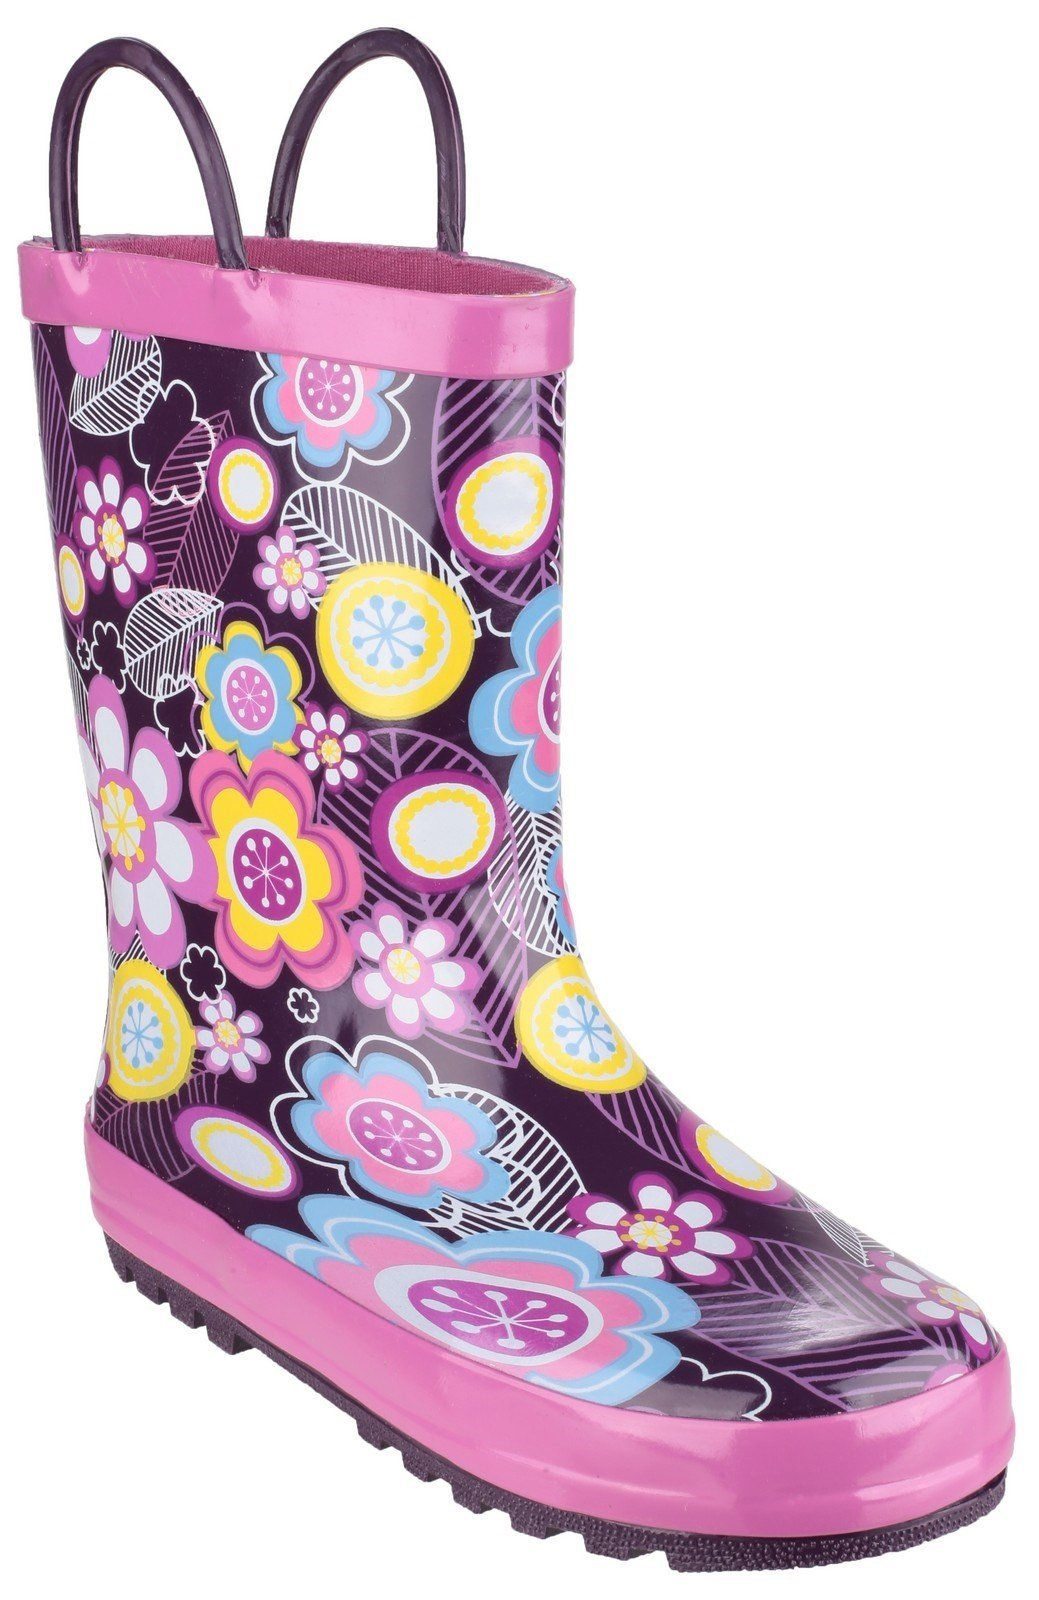 Cotswold Kids Puddle Waterproof Pull On Boot Multicolor 20962 - Flower 6